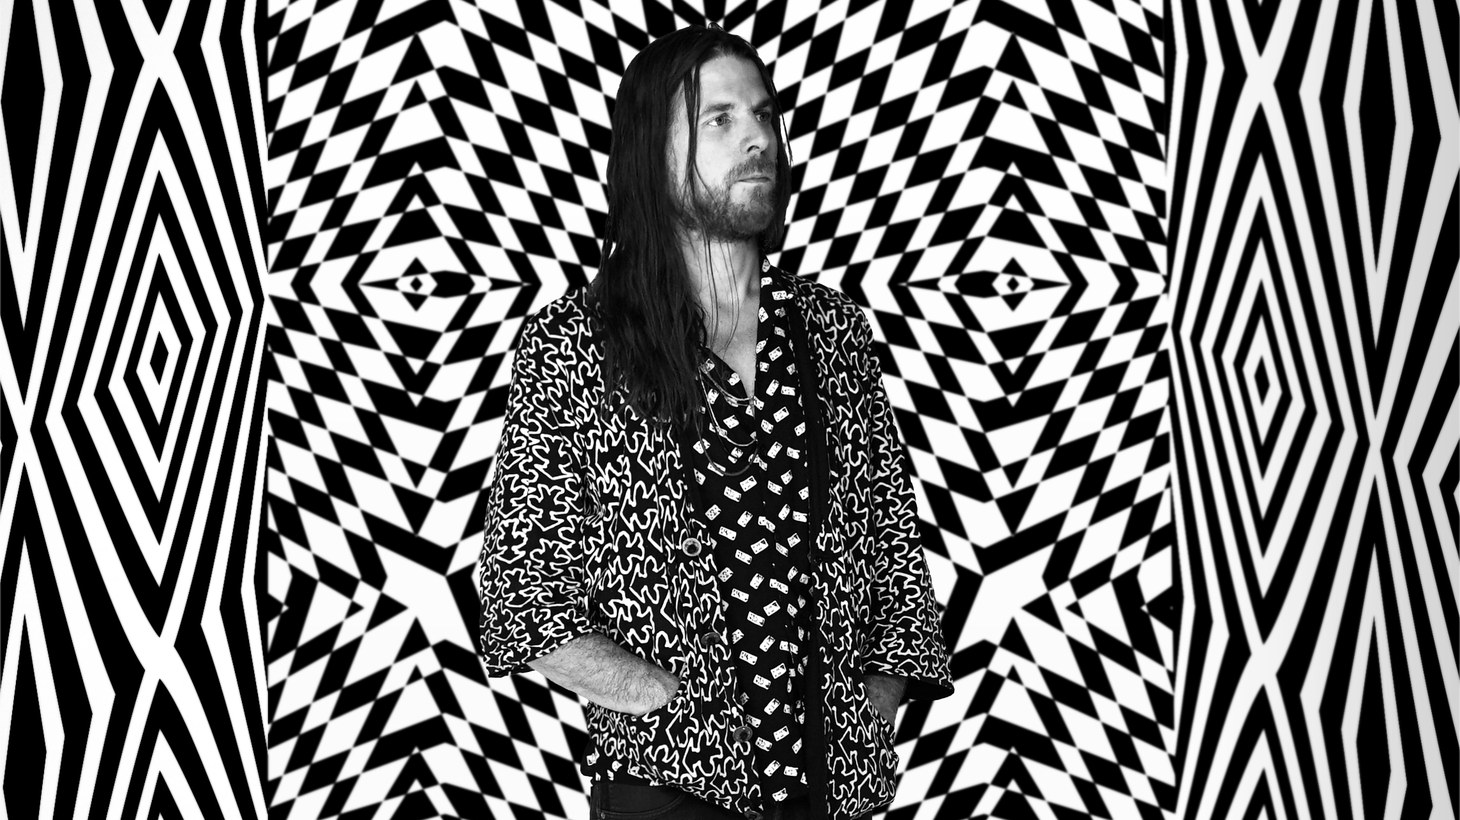 Ambitious. Expansive. Lavish. These are words that have been used to describe Jonathan Wilson's third solo album Rare Birds. The LA-based singer-songwriter is putting together a special live set for us.